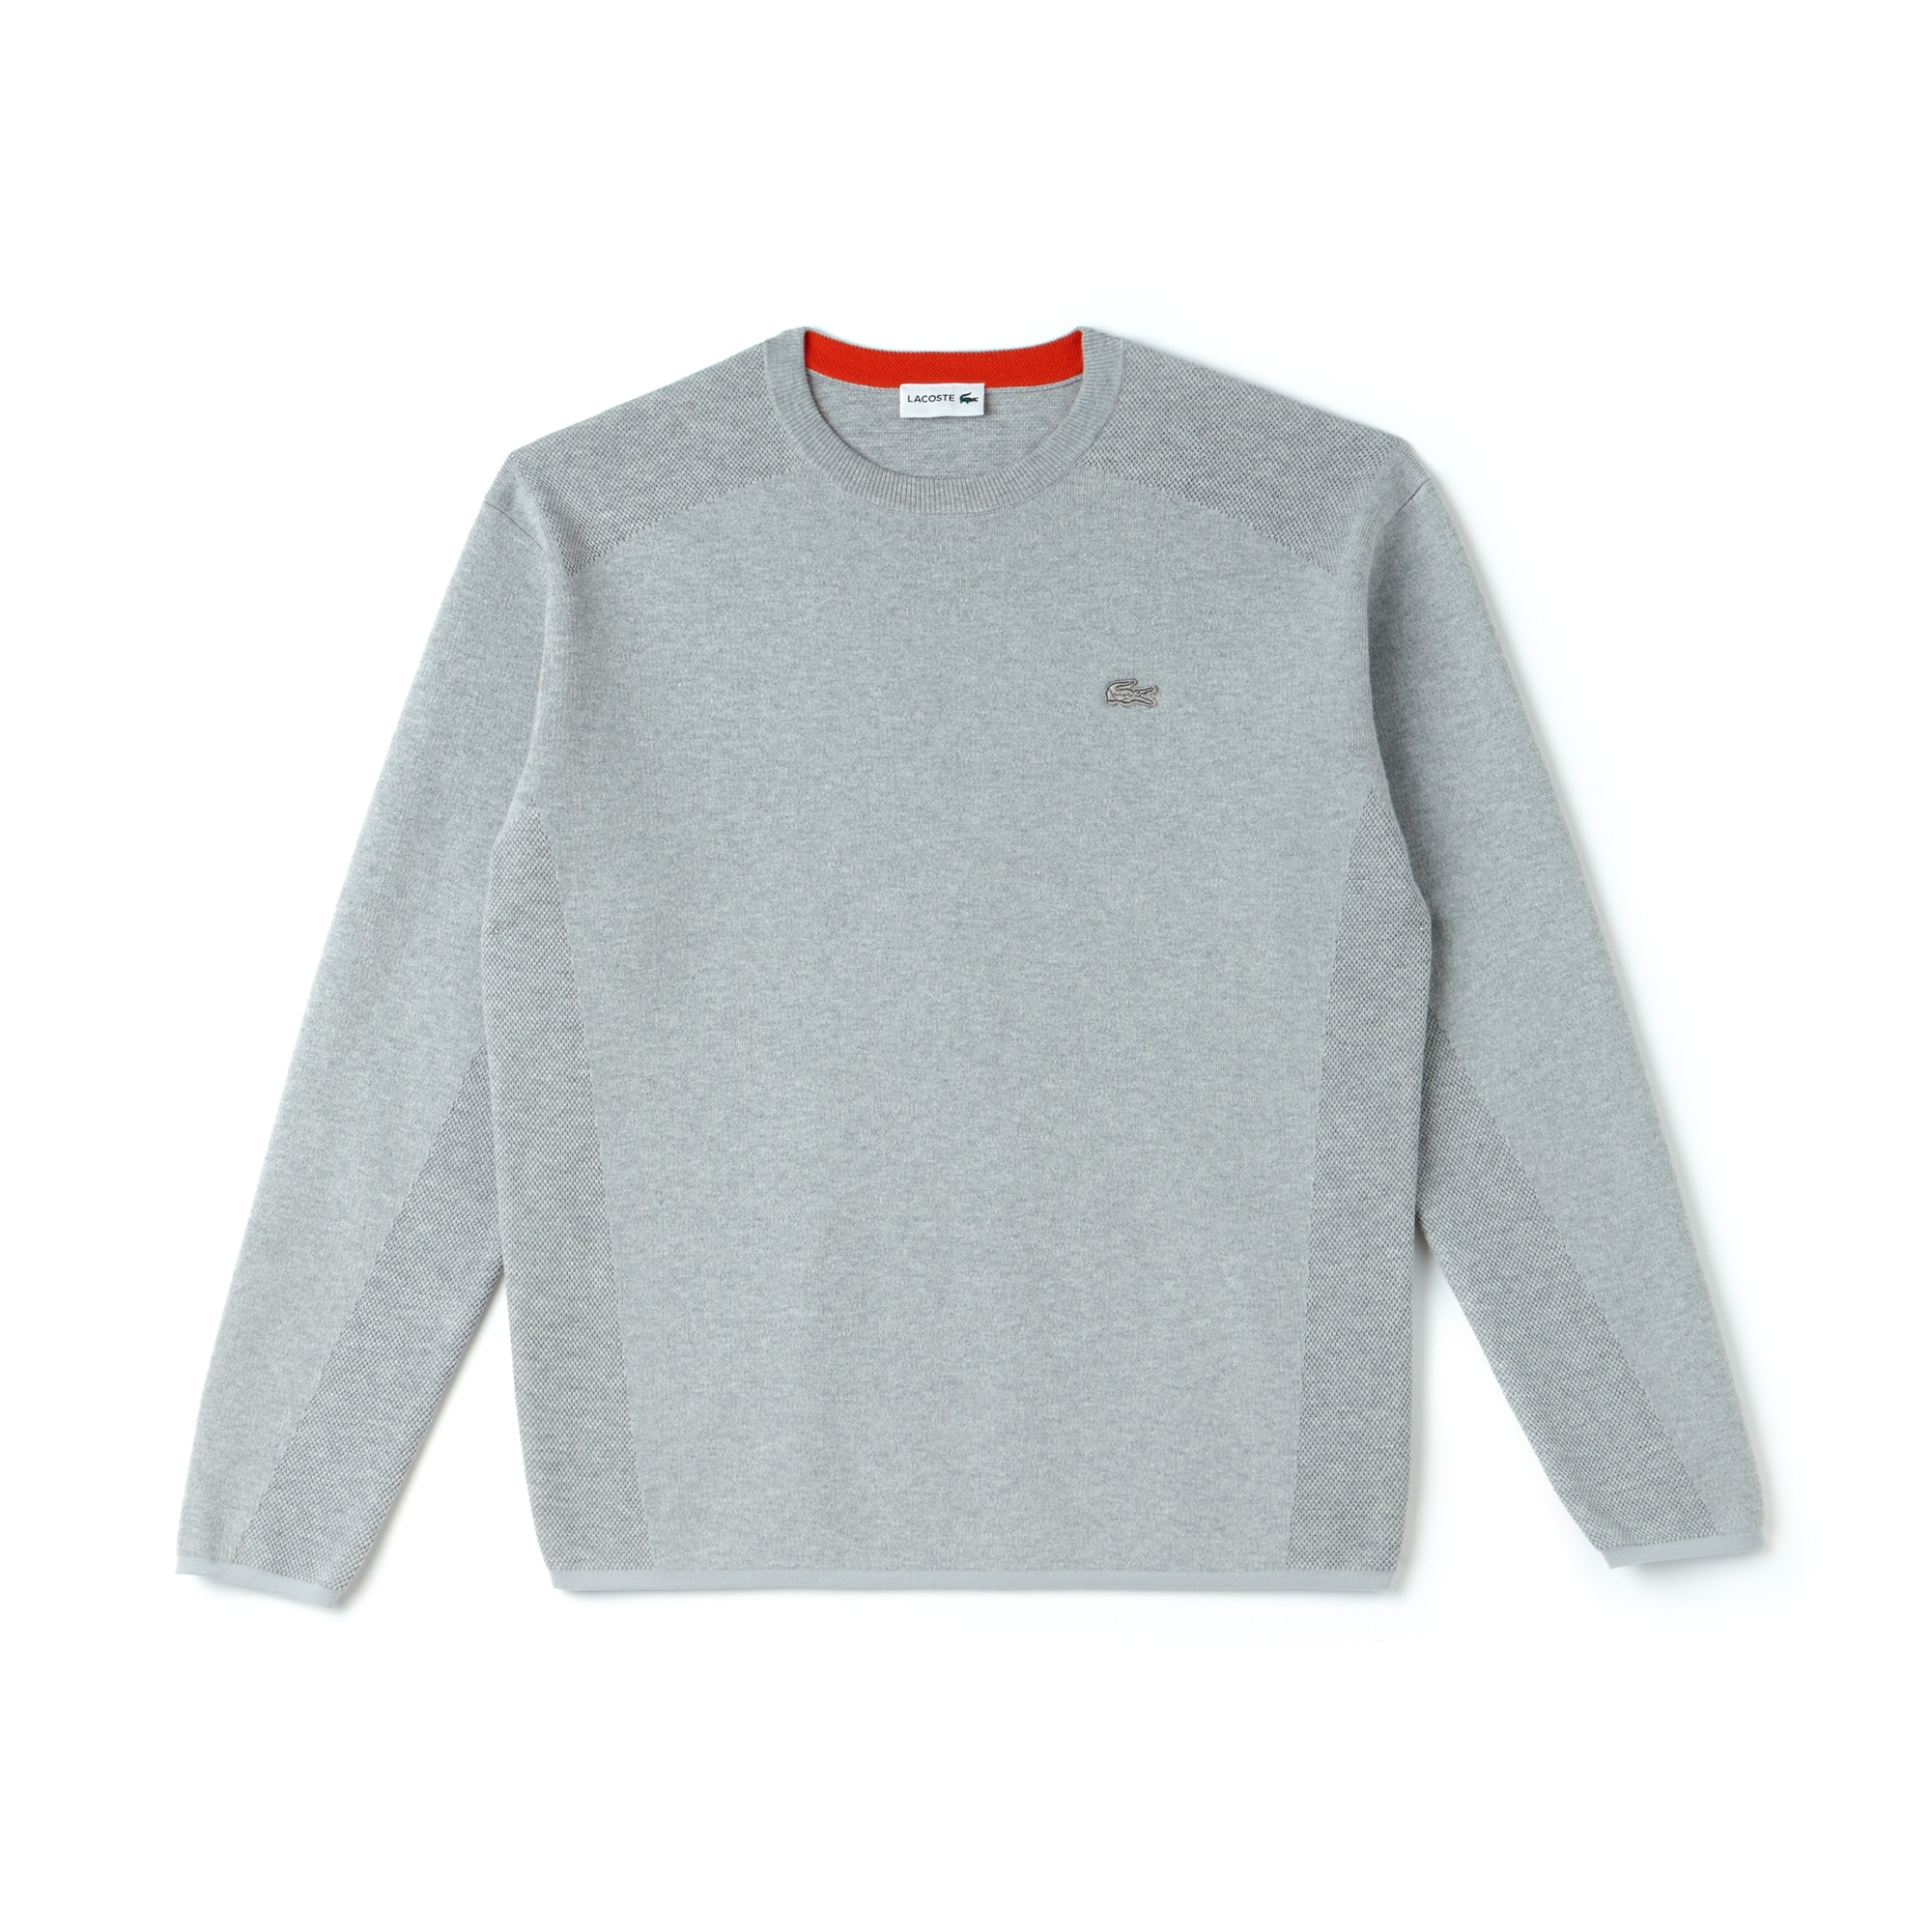 Men's Lacoste Motion Crew Neck Coolmax Cotton Sweater